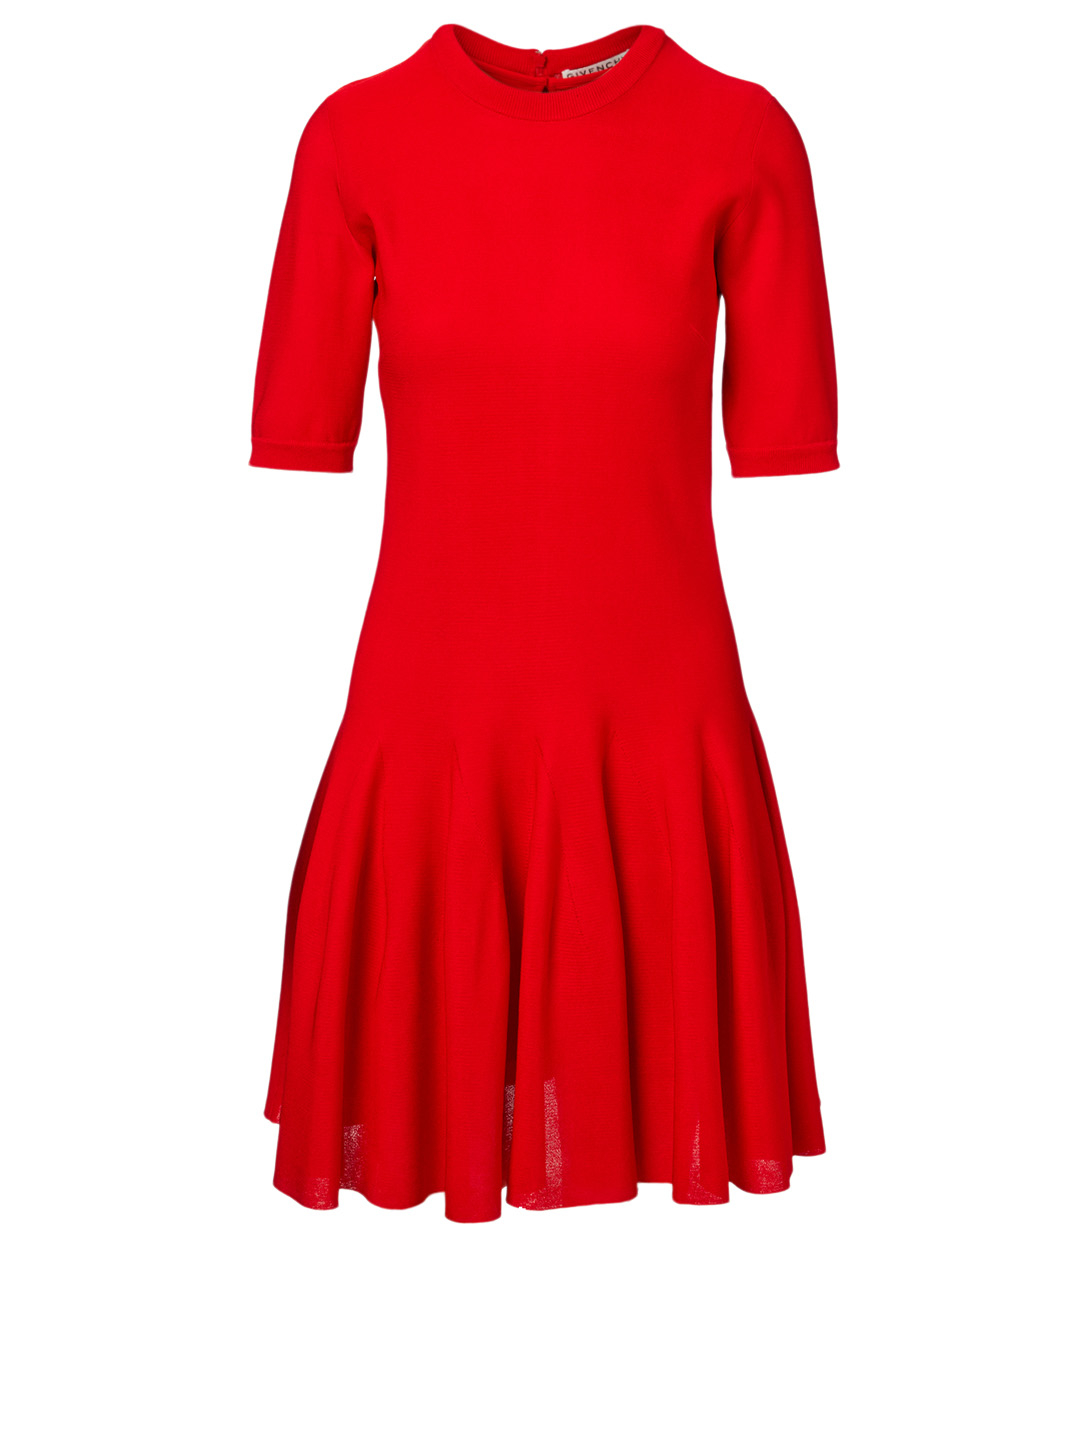 GIVENCHY Silk-Blend Knit Dress Women's Red